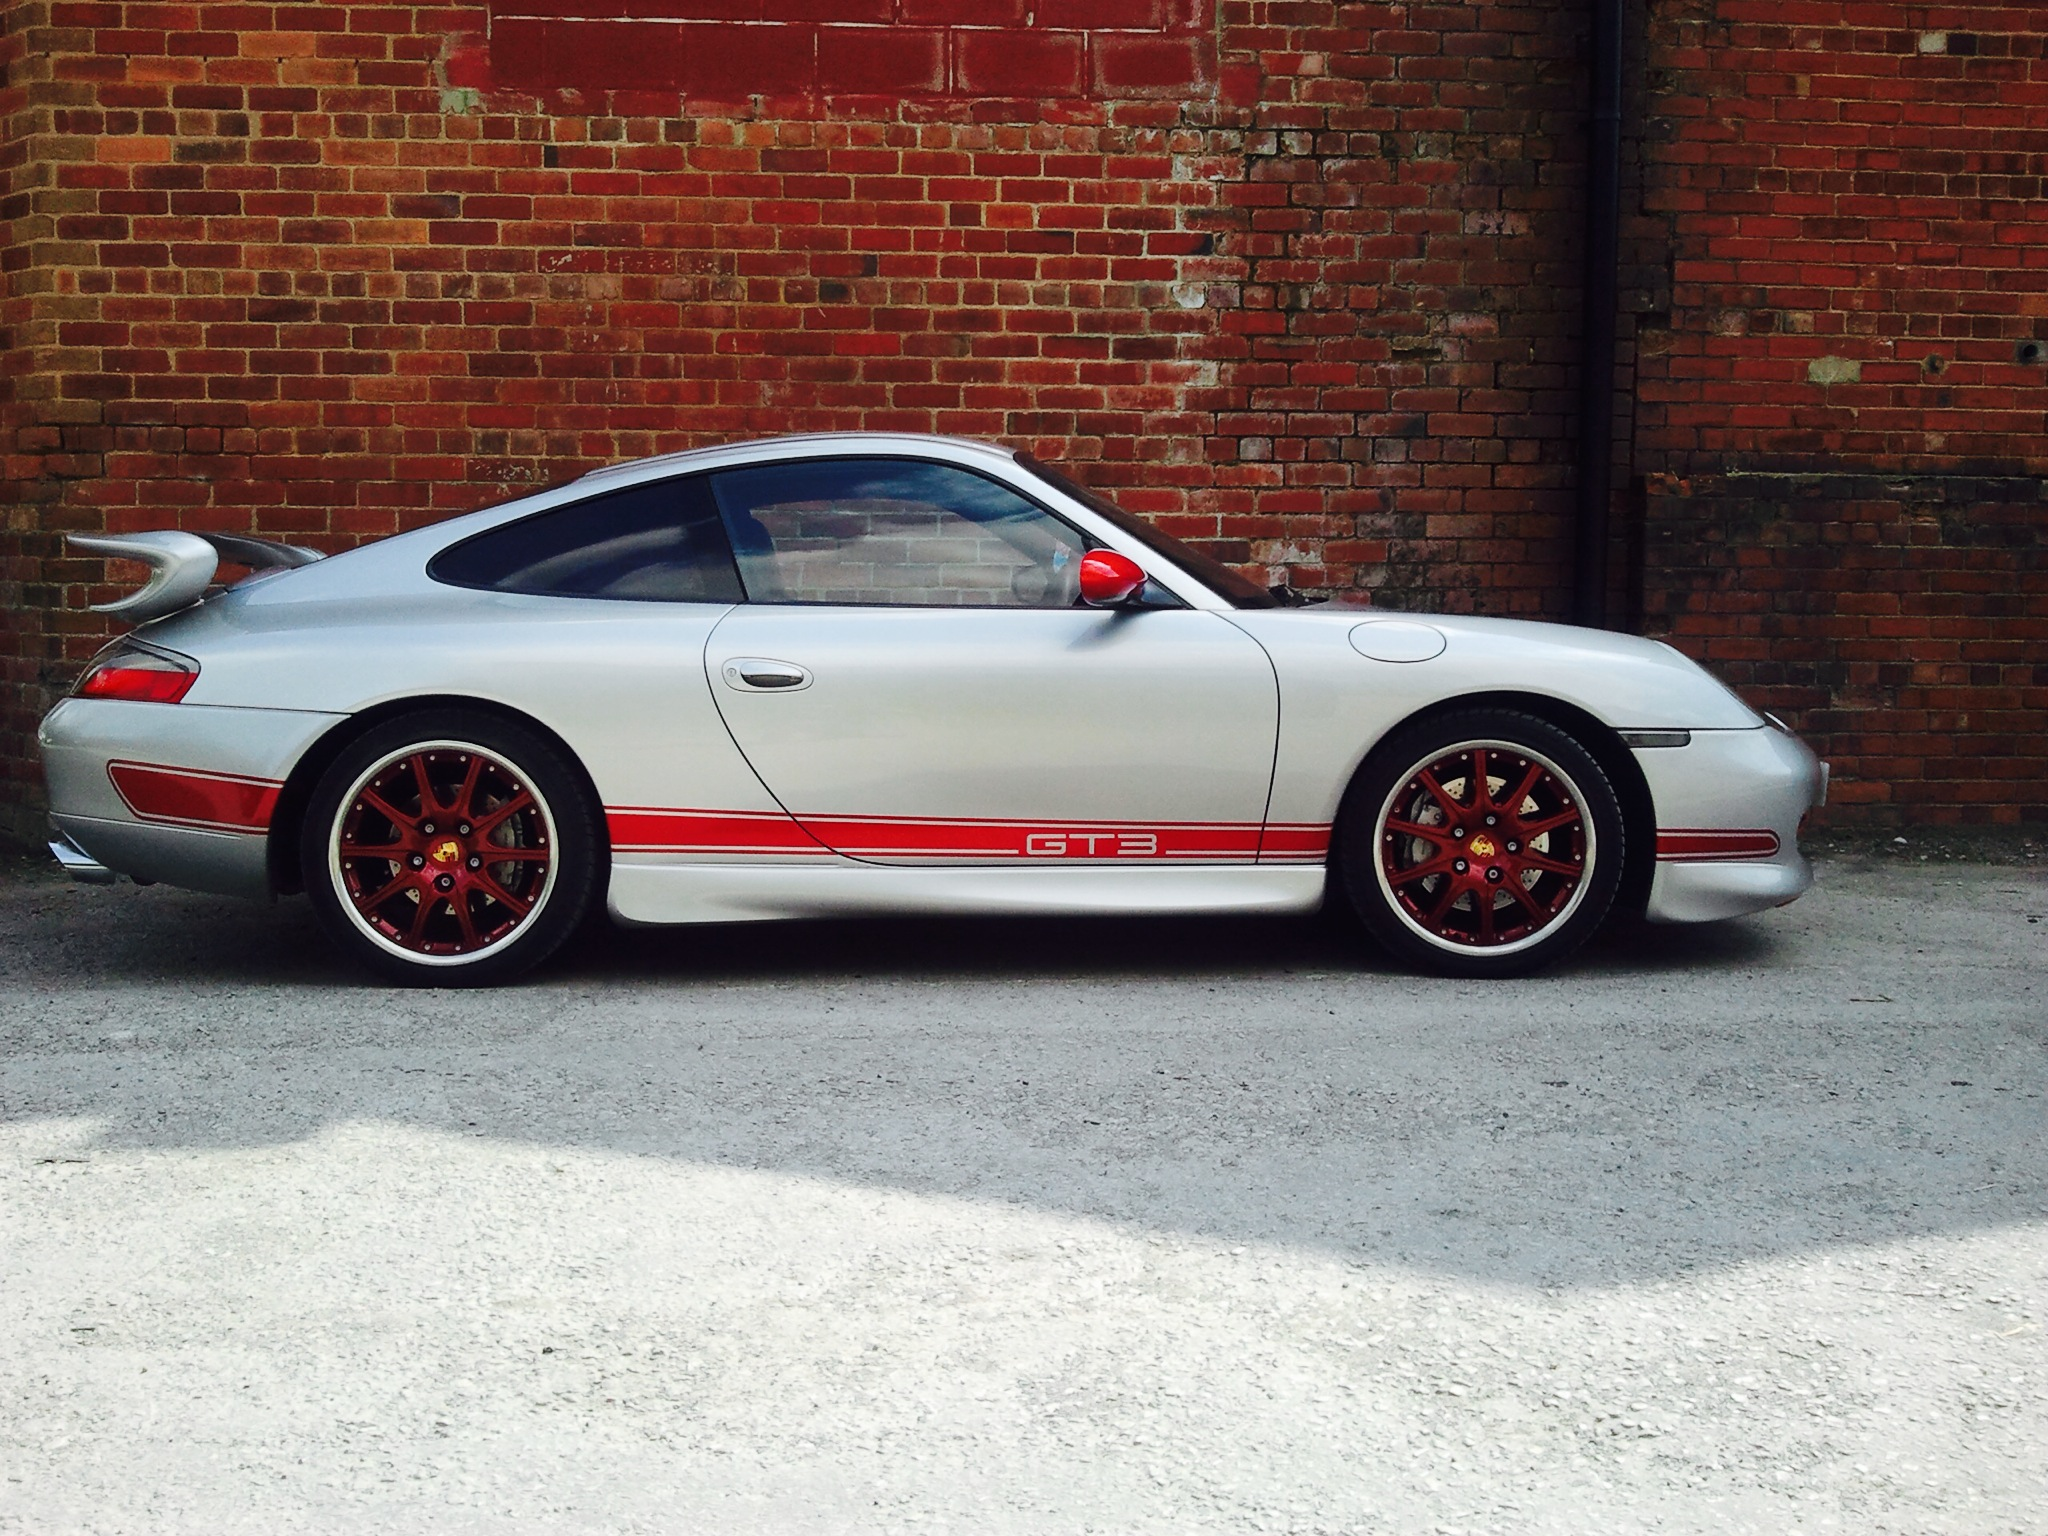 Striking Porsche 996 GT3 Replica